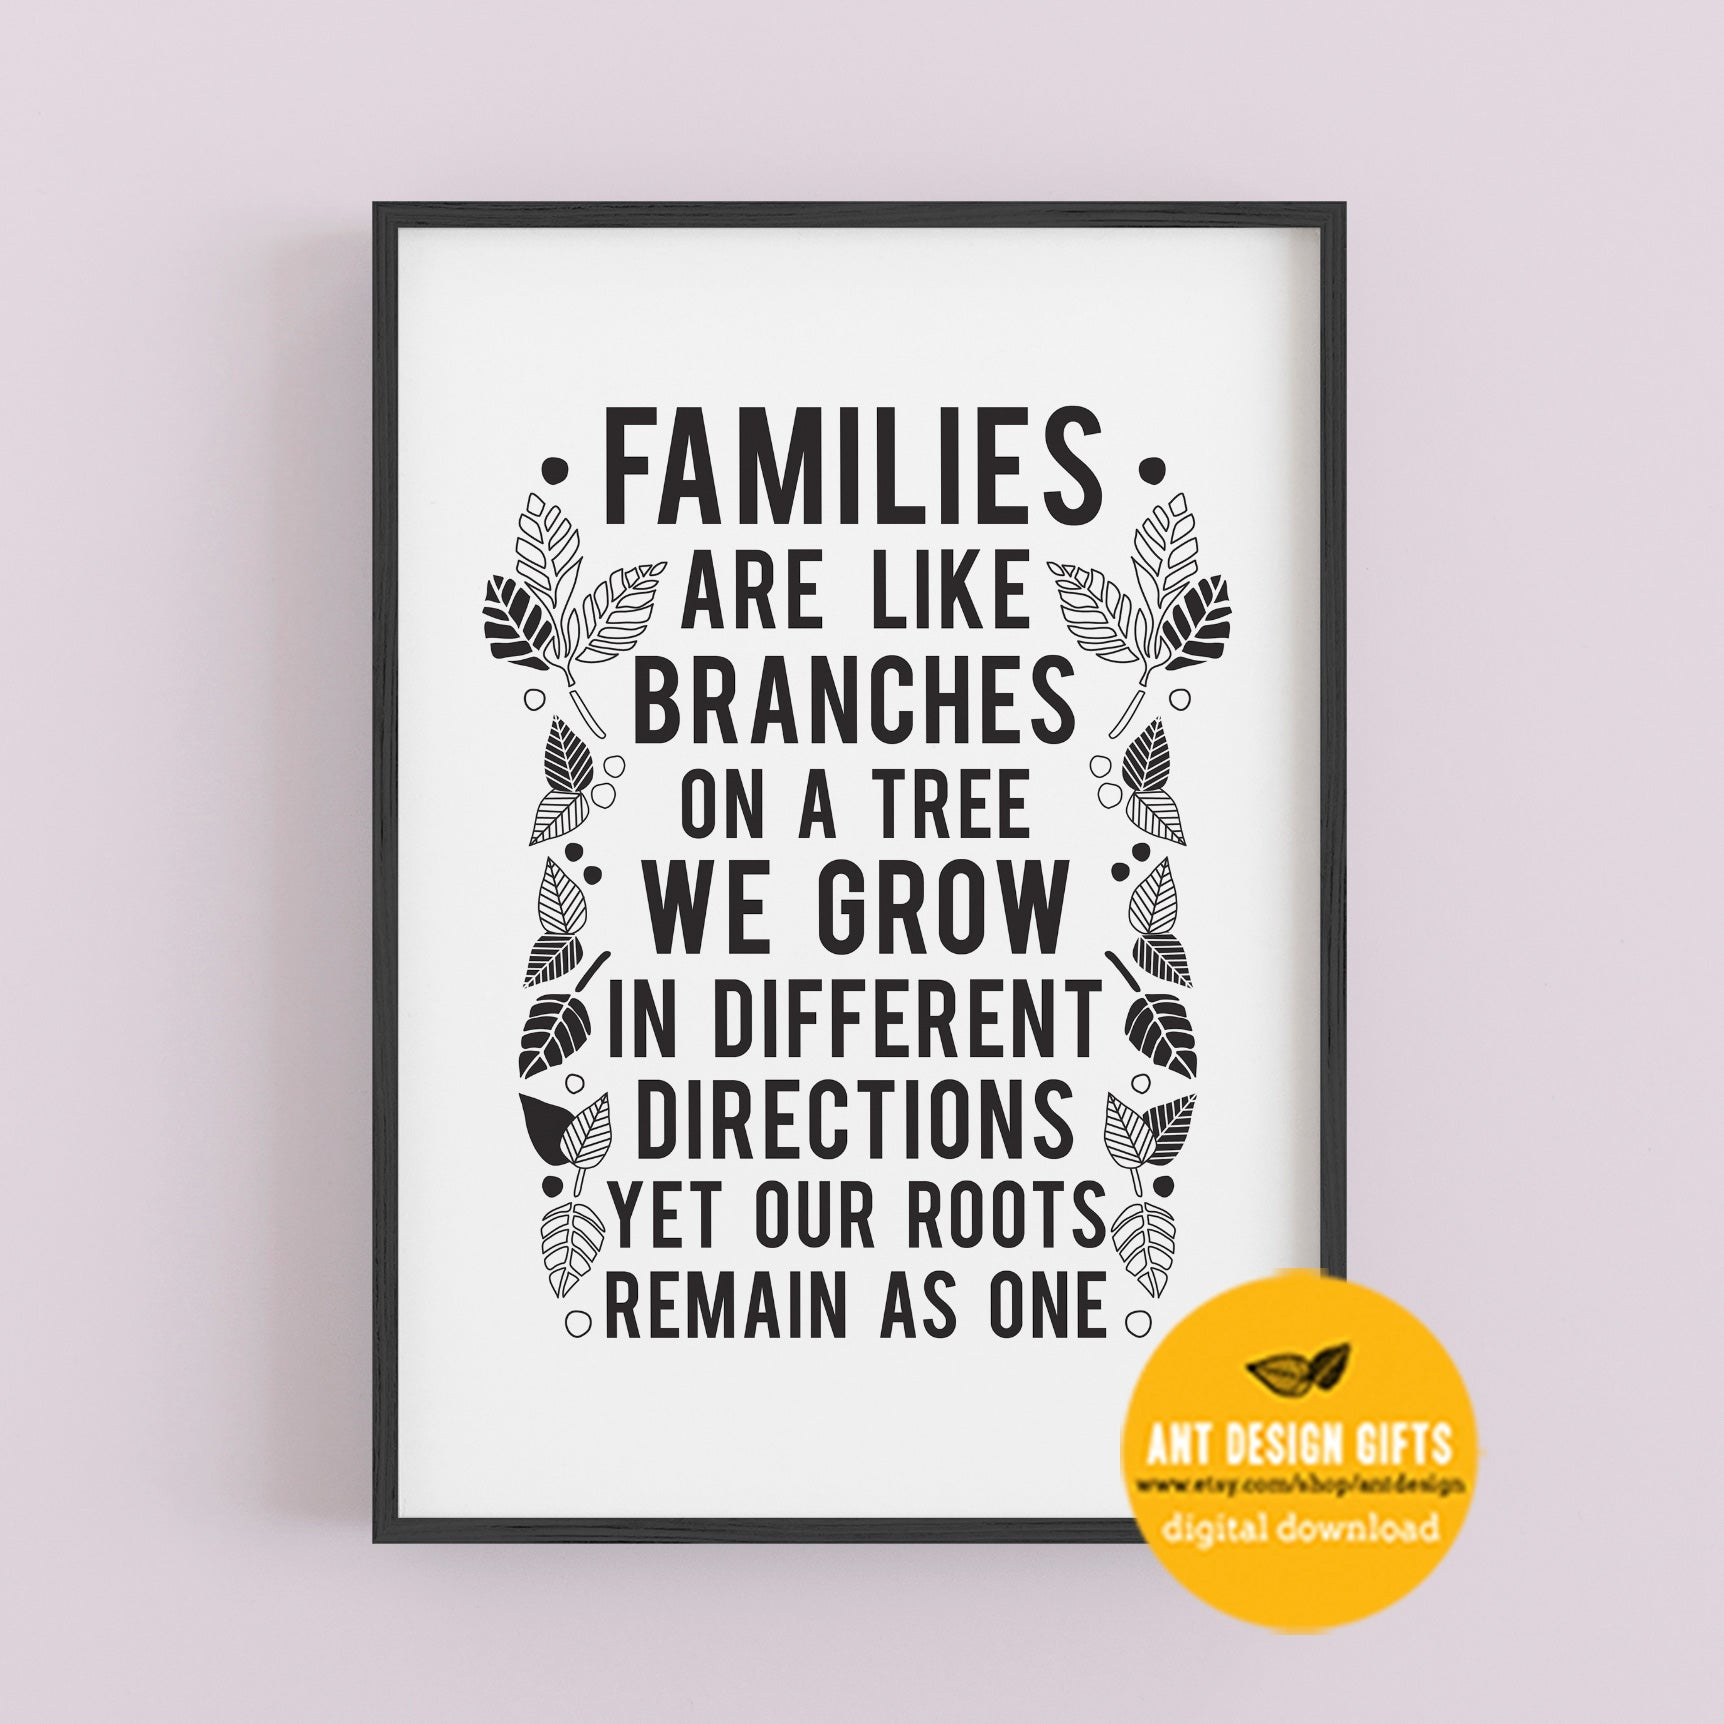 Digital Download - Family Tree Print - Ant Design Gifts